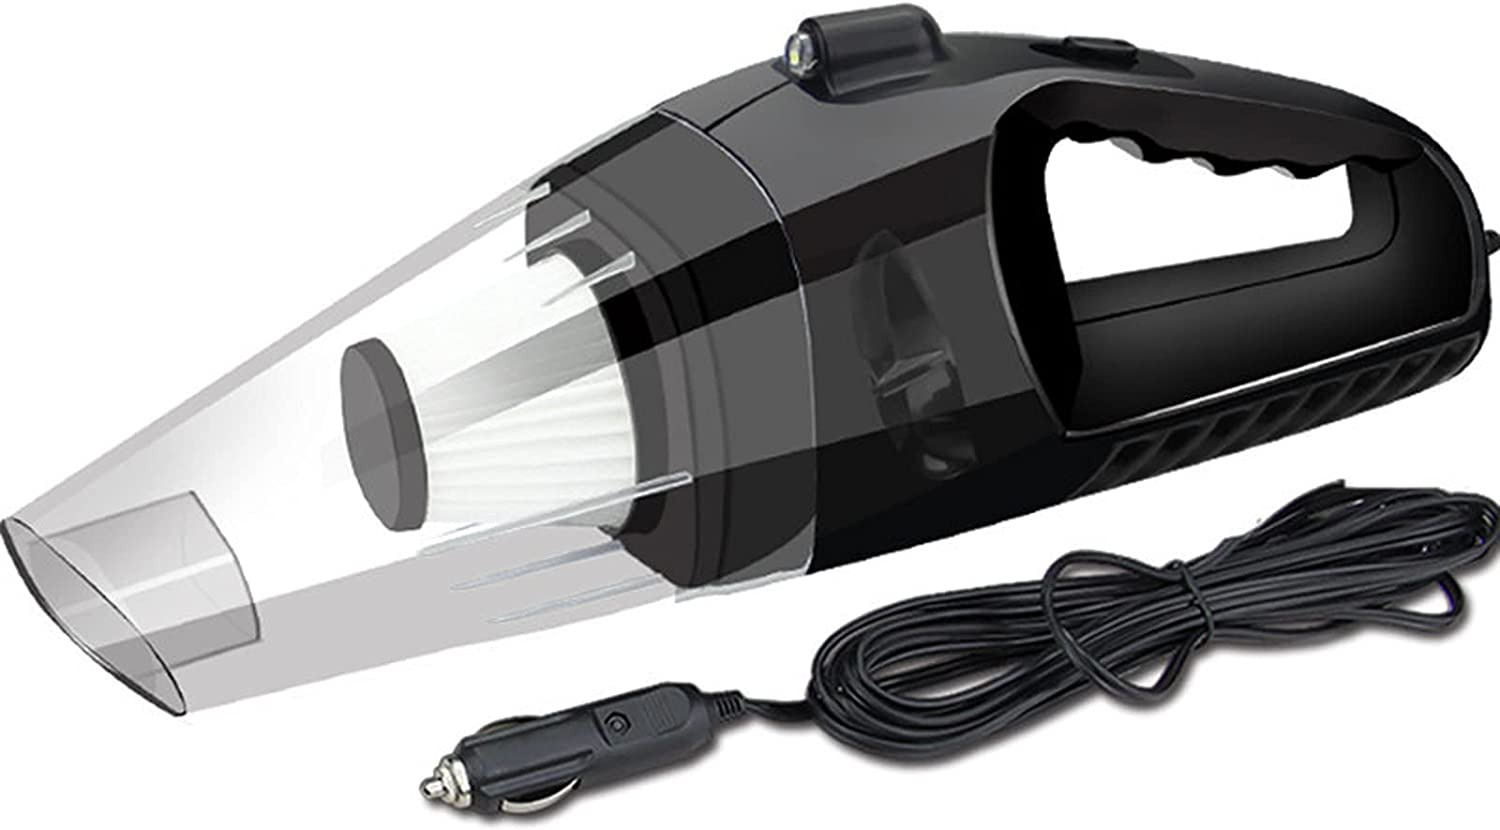 GJYY Hand-Held Vacuum Japan Maker New Cleaner is Max 53% OFF 120W Cordless 8000Pa Pow